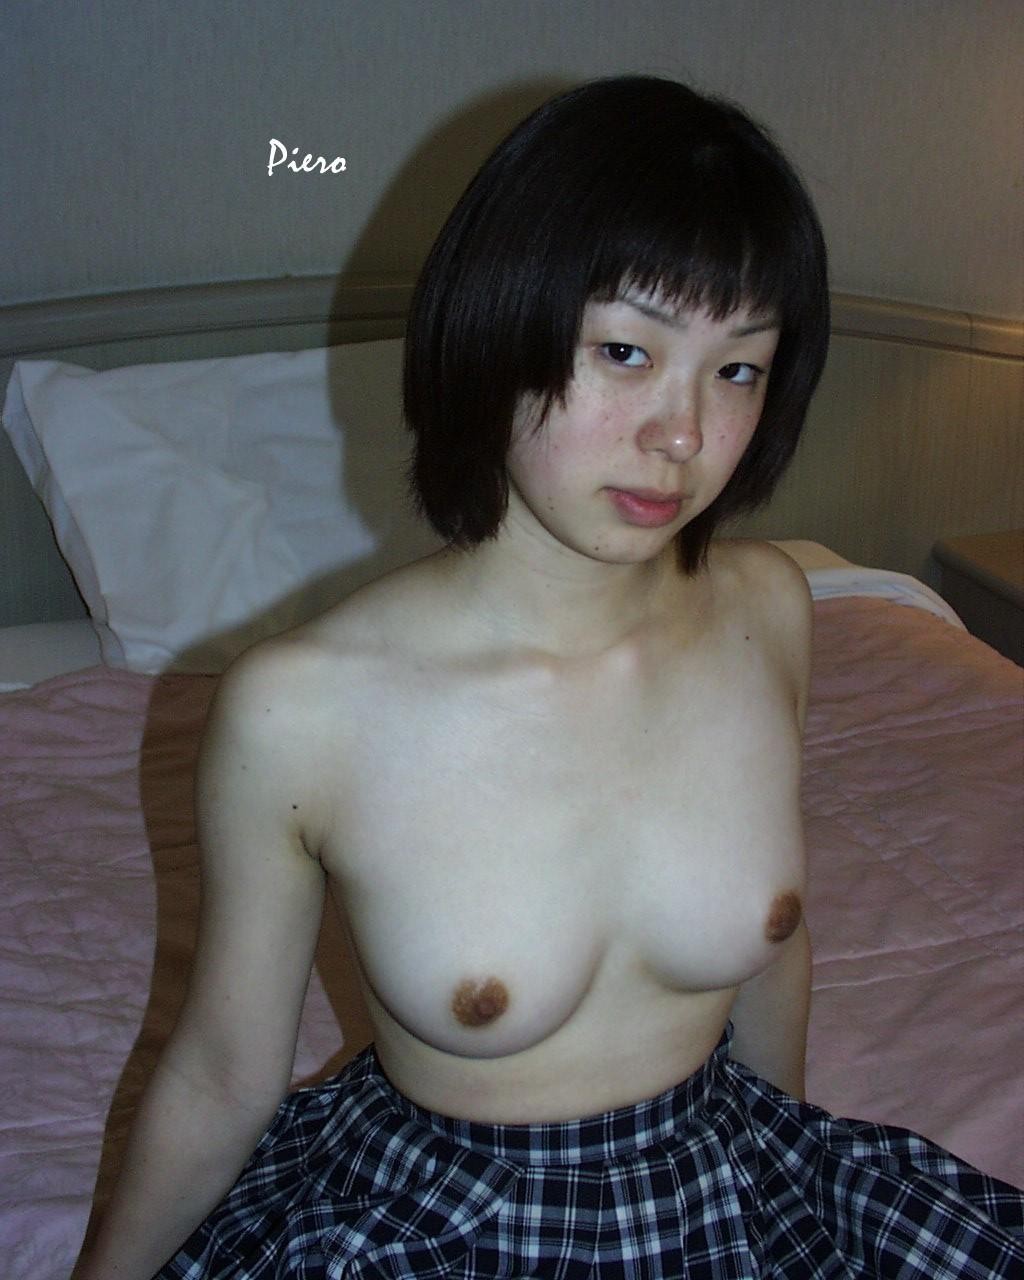 japan   leak nude xopersion: Super Cute Japanese schoolgirl Haruka's private sexy nude photos were leaked by her boyfriend